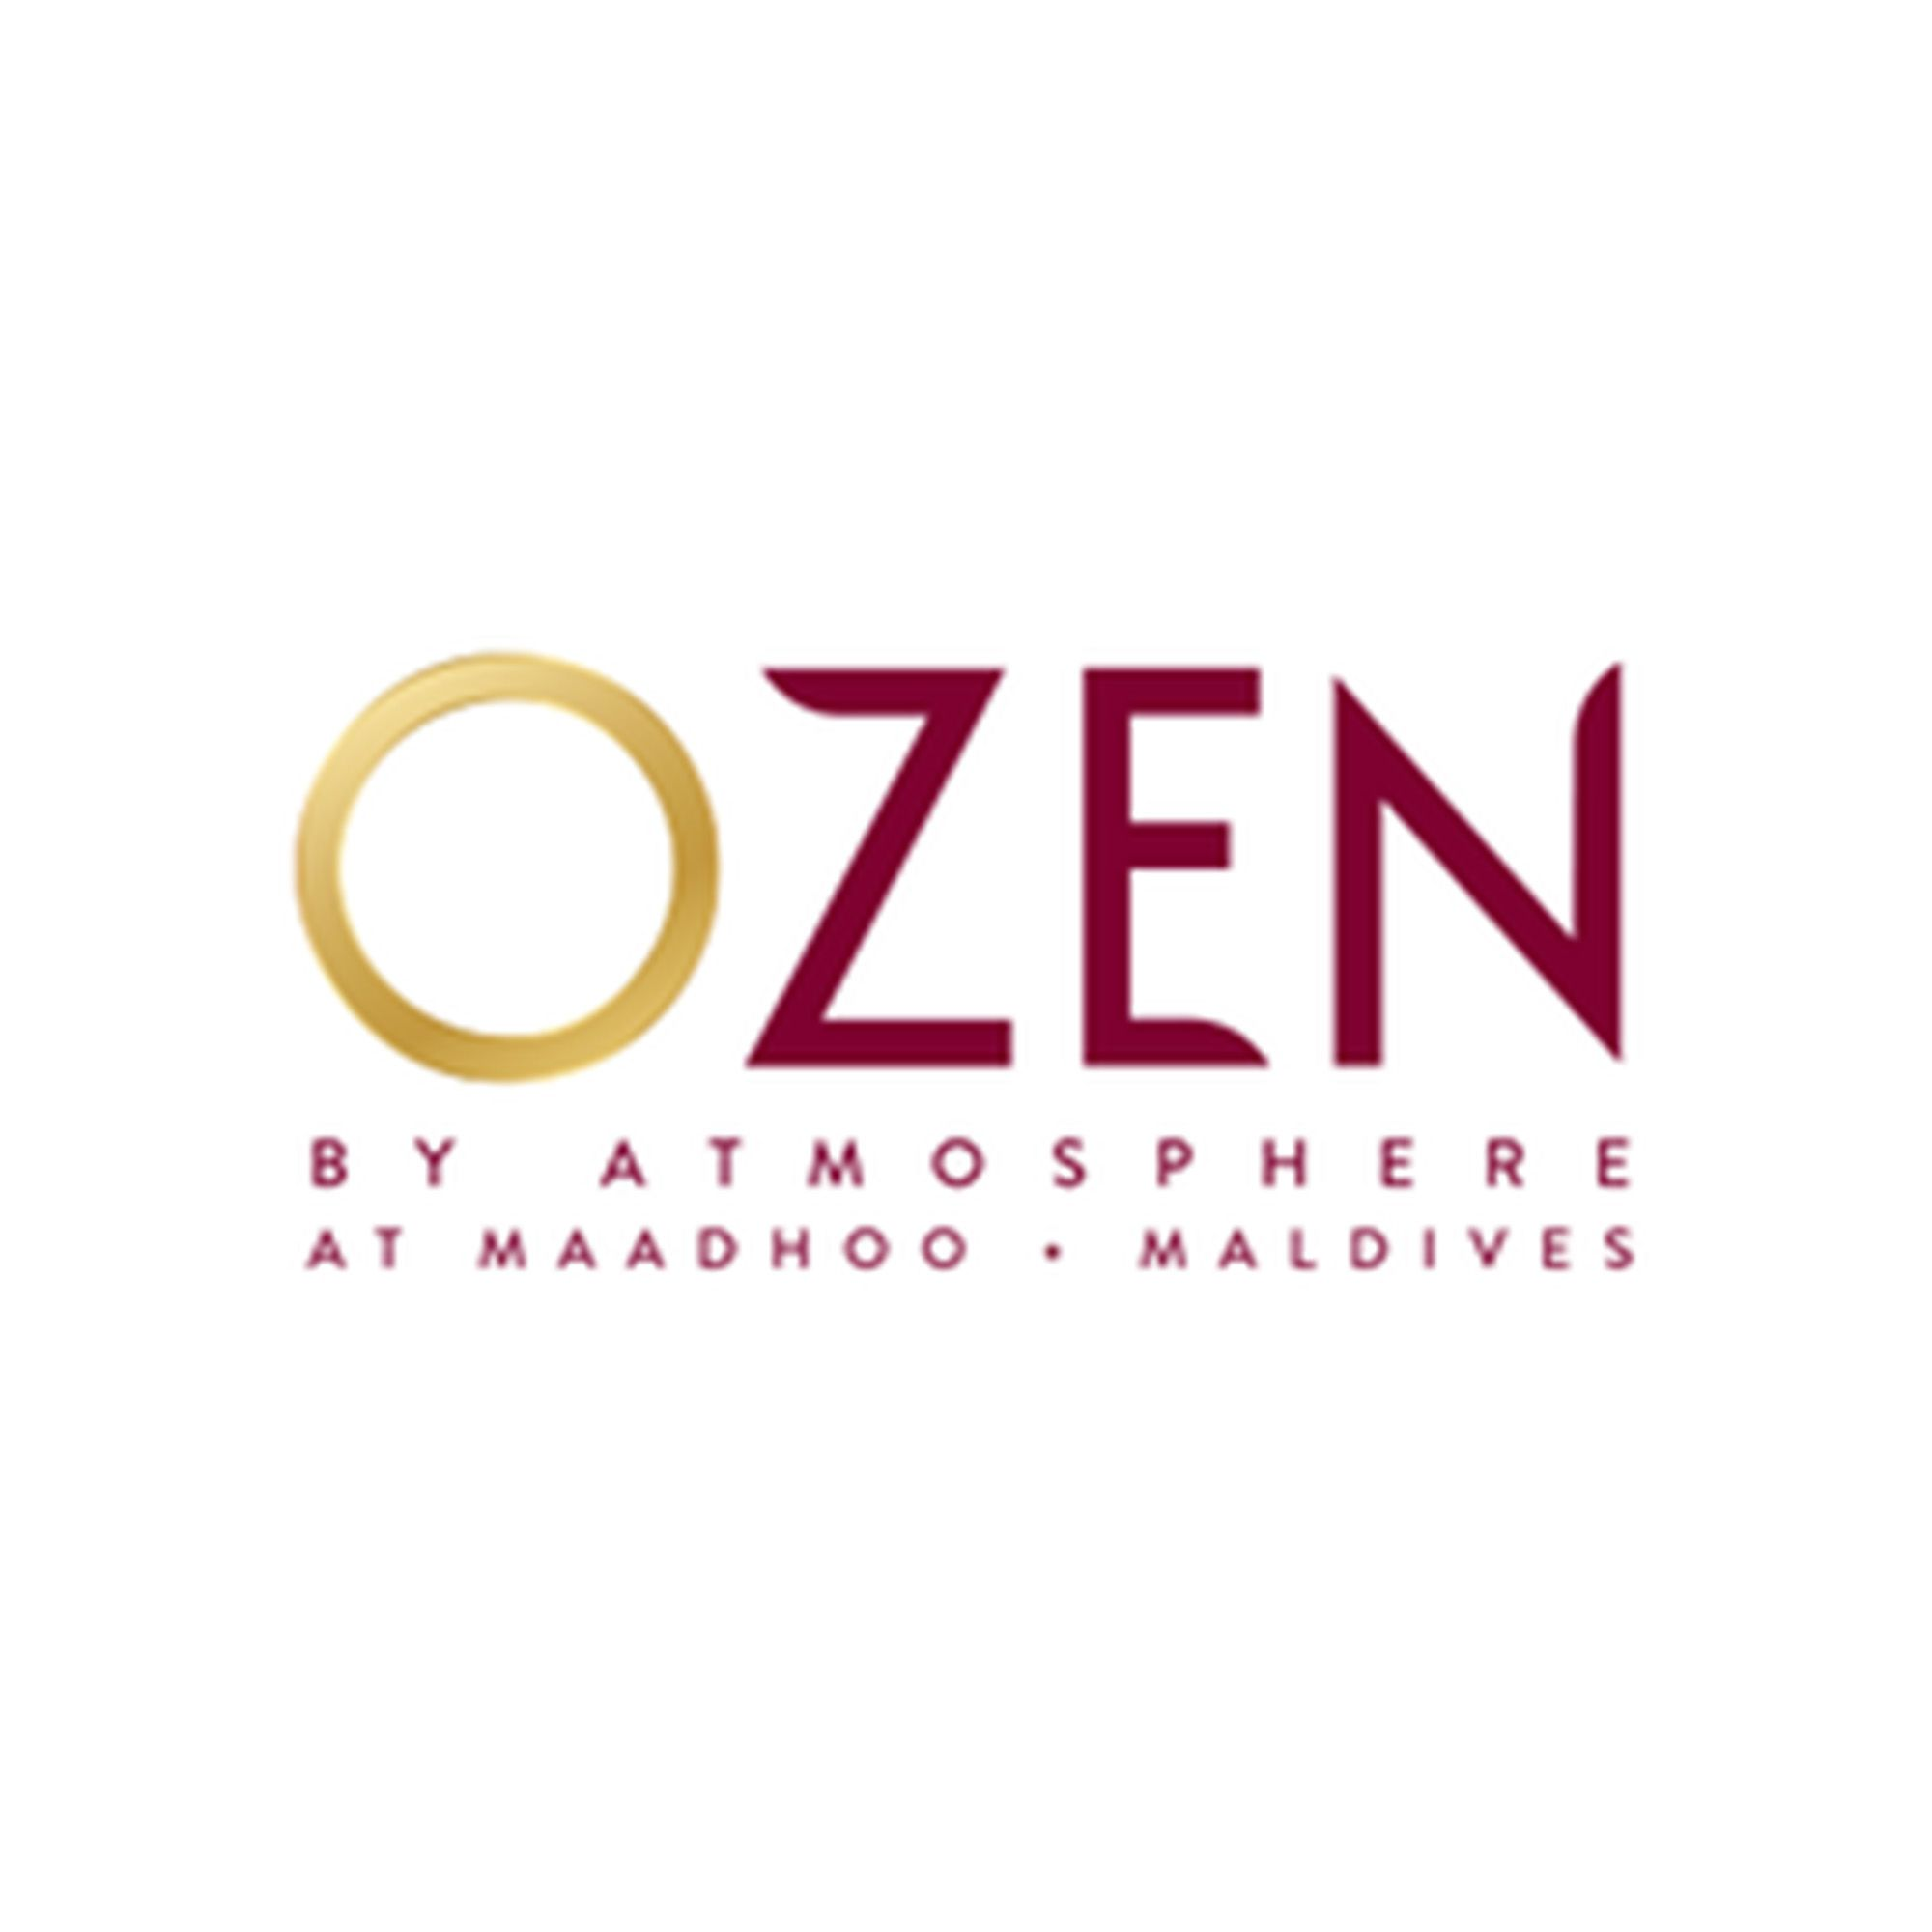 OZEN by Atmosphere